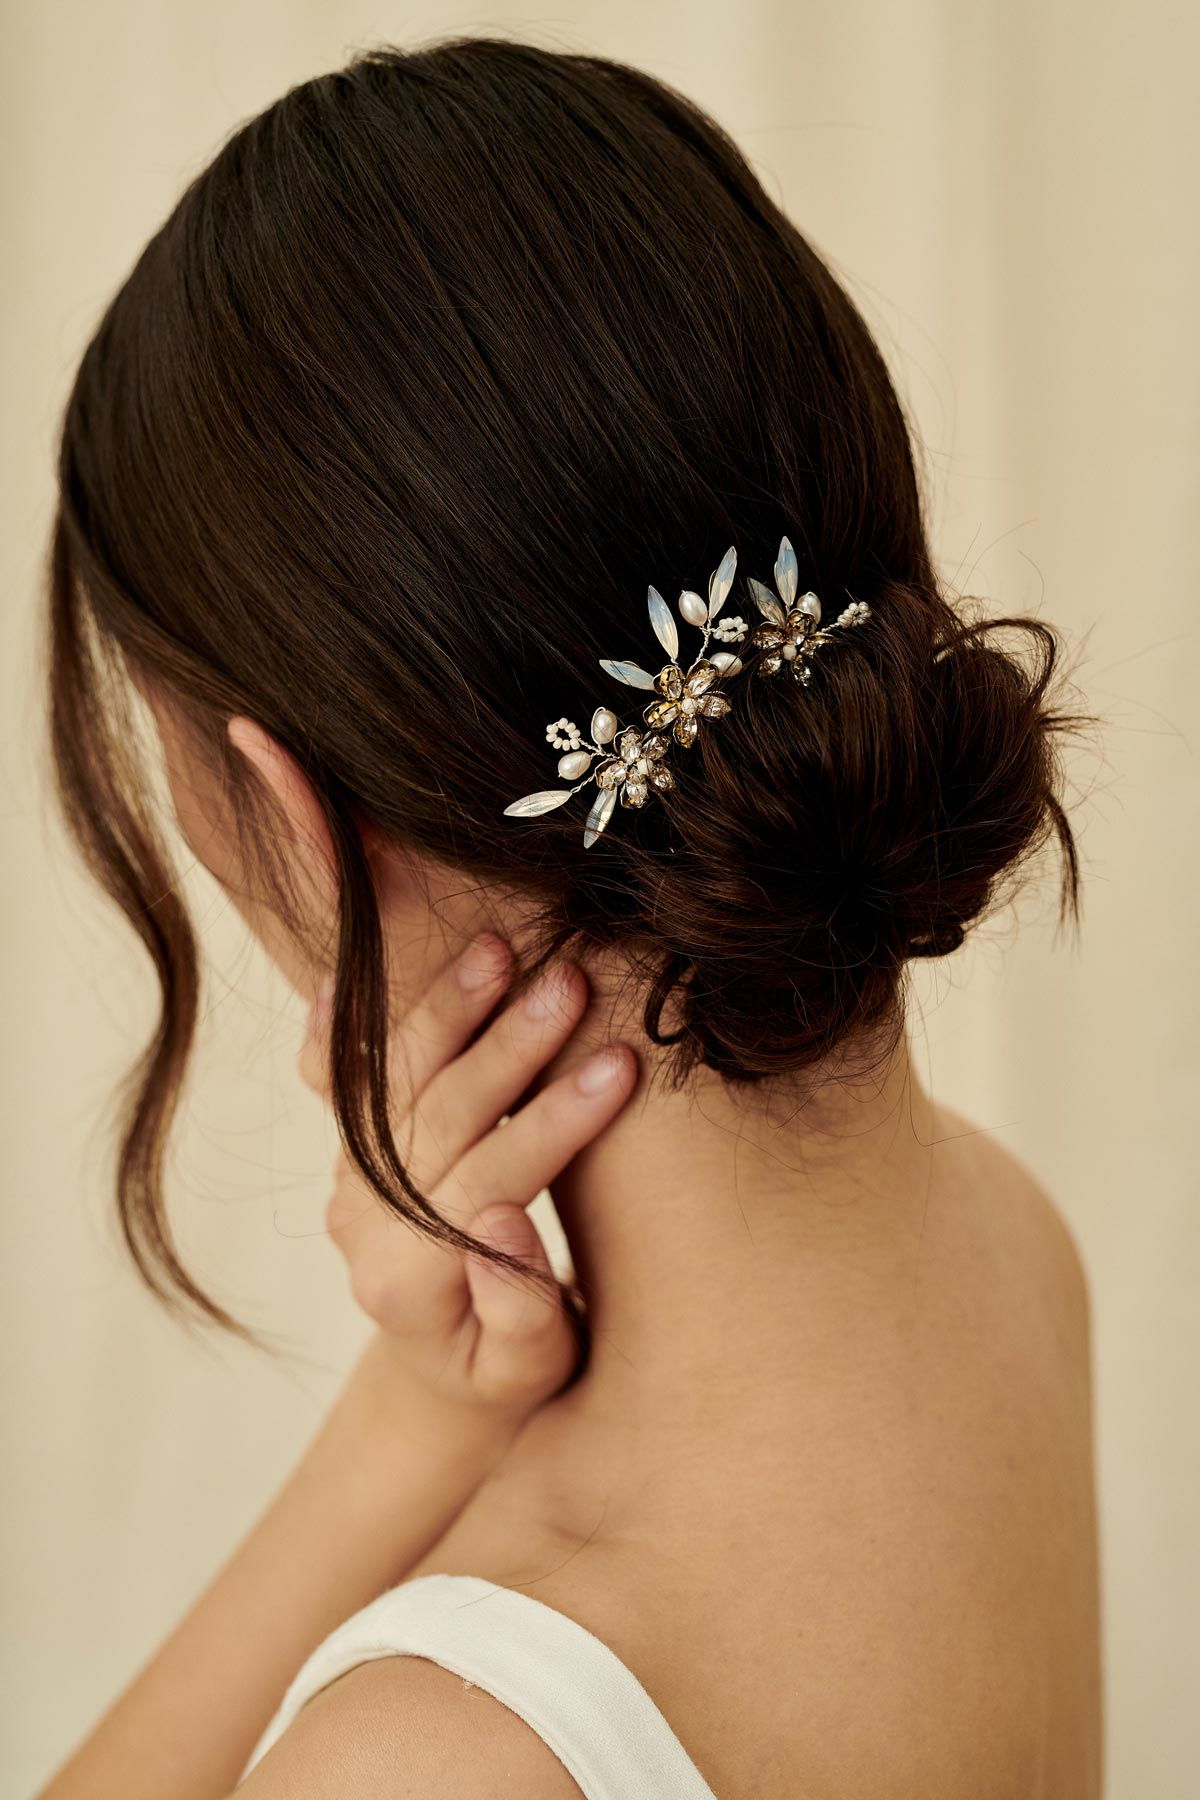 Floral cluster hairpins with glass beads, pearls, and marquise beading